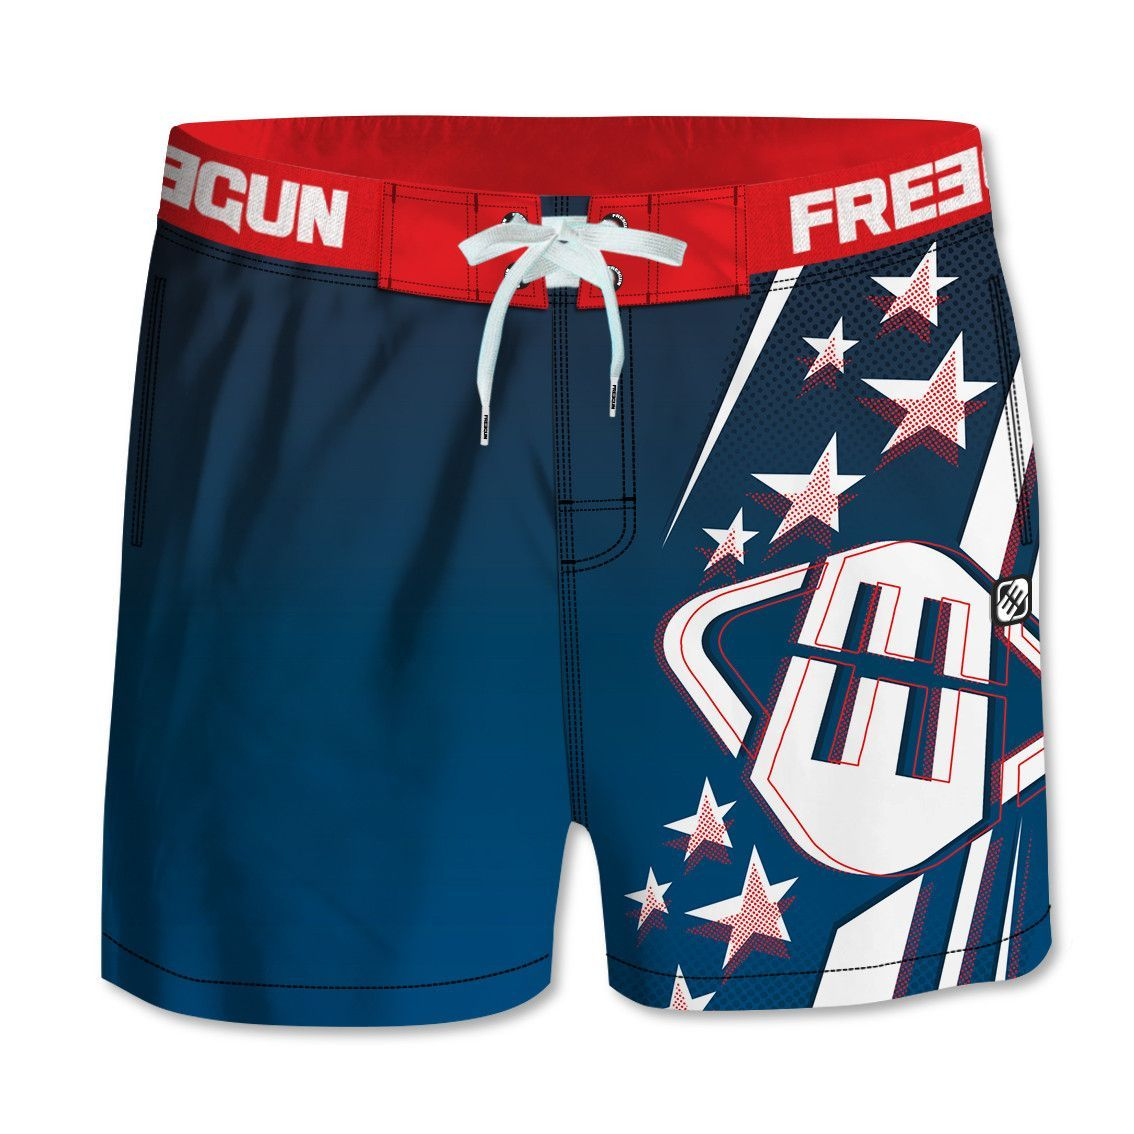 Boardshort court homme freegun bleu (photo)